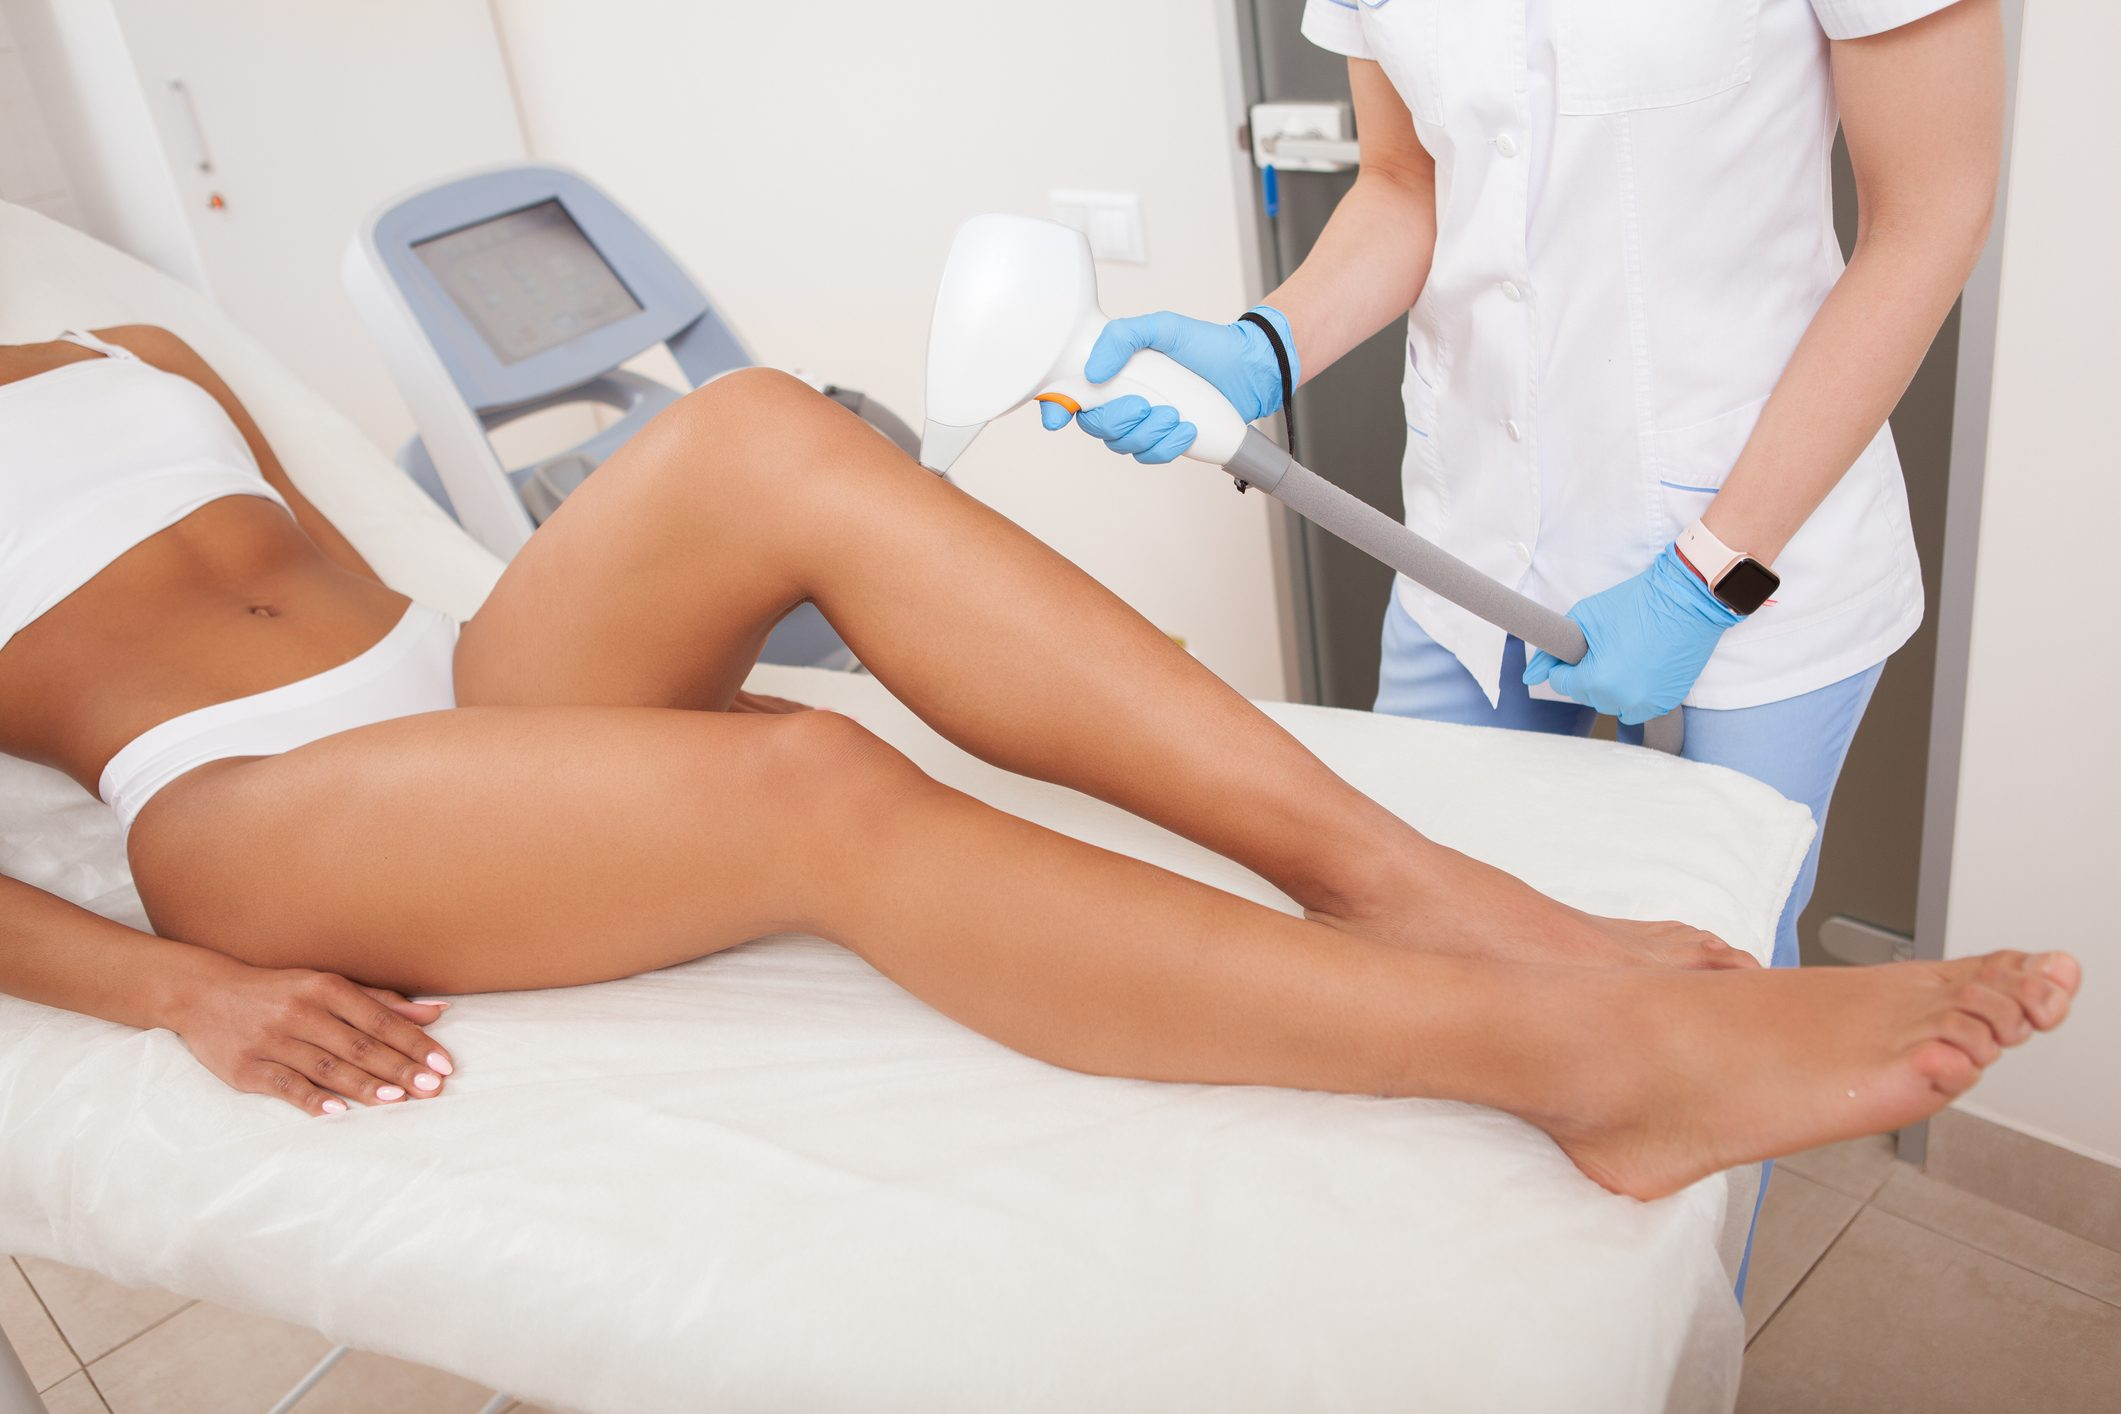 woman getting laser hair removal treatment